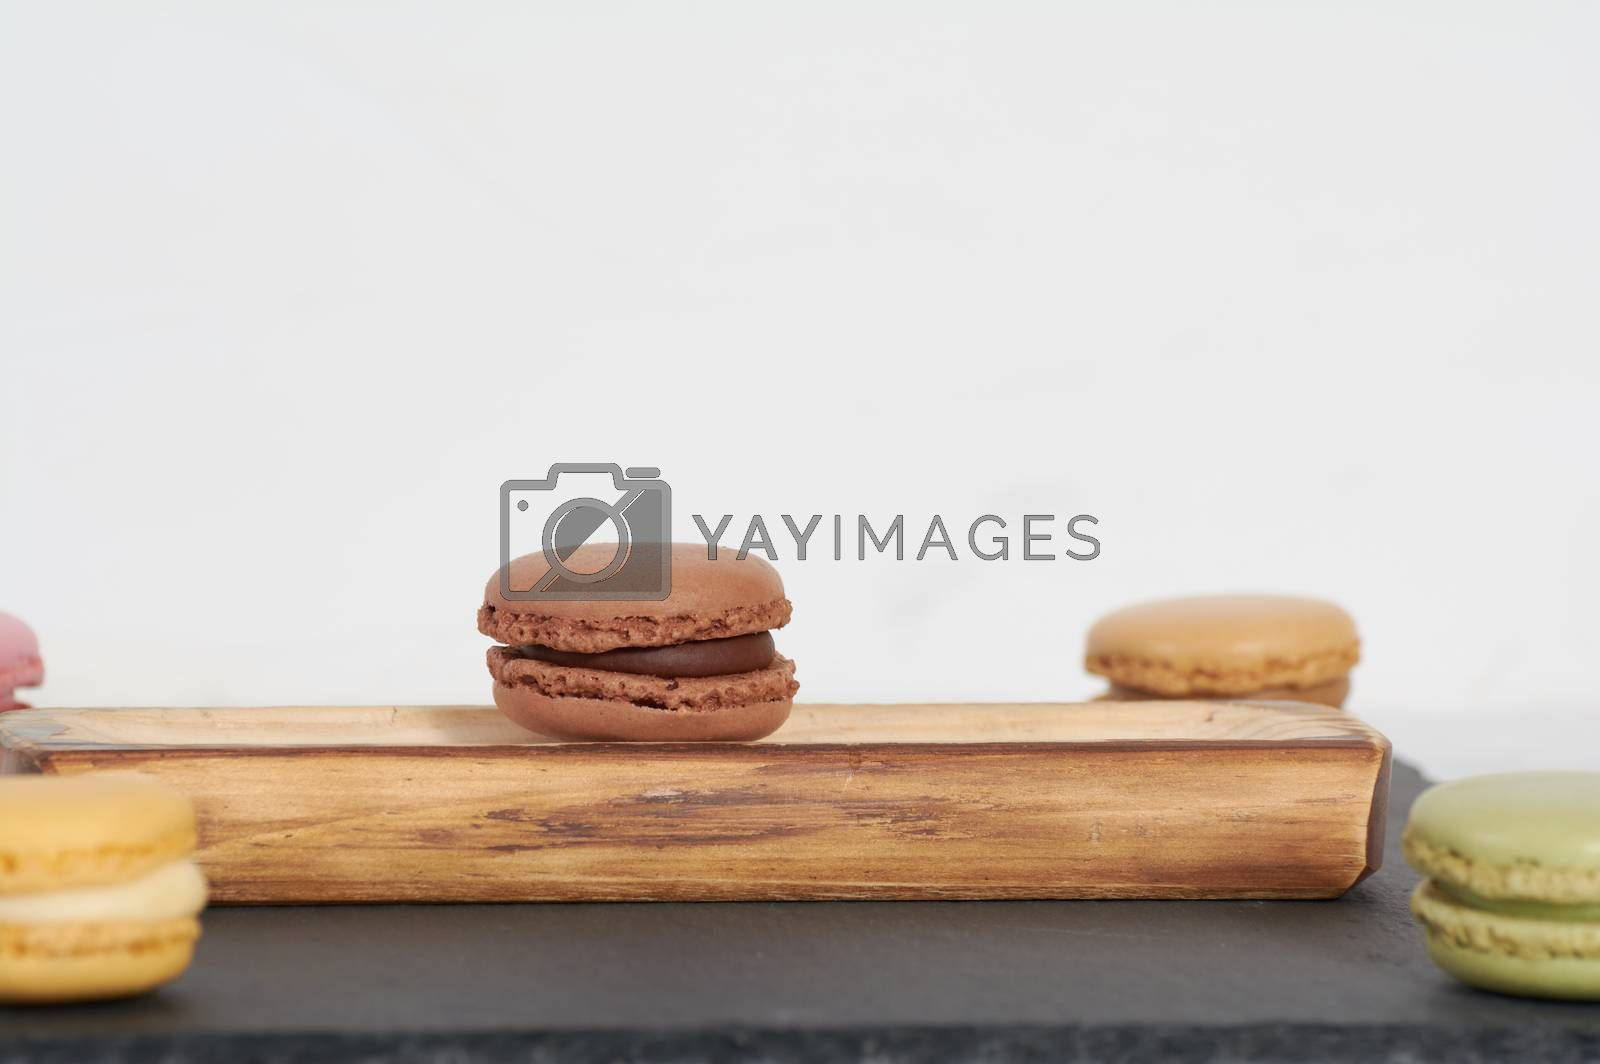 Royalty free image of breakfast of macarons wooden splint by Prf_photo